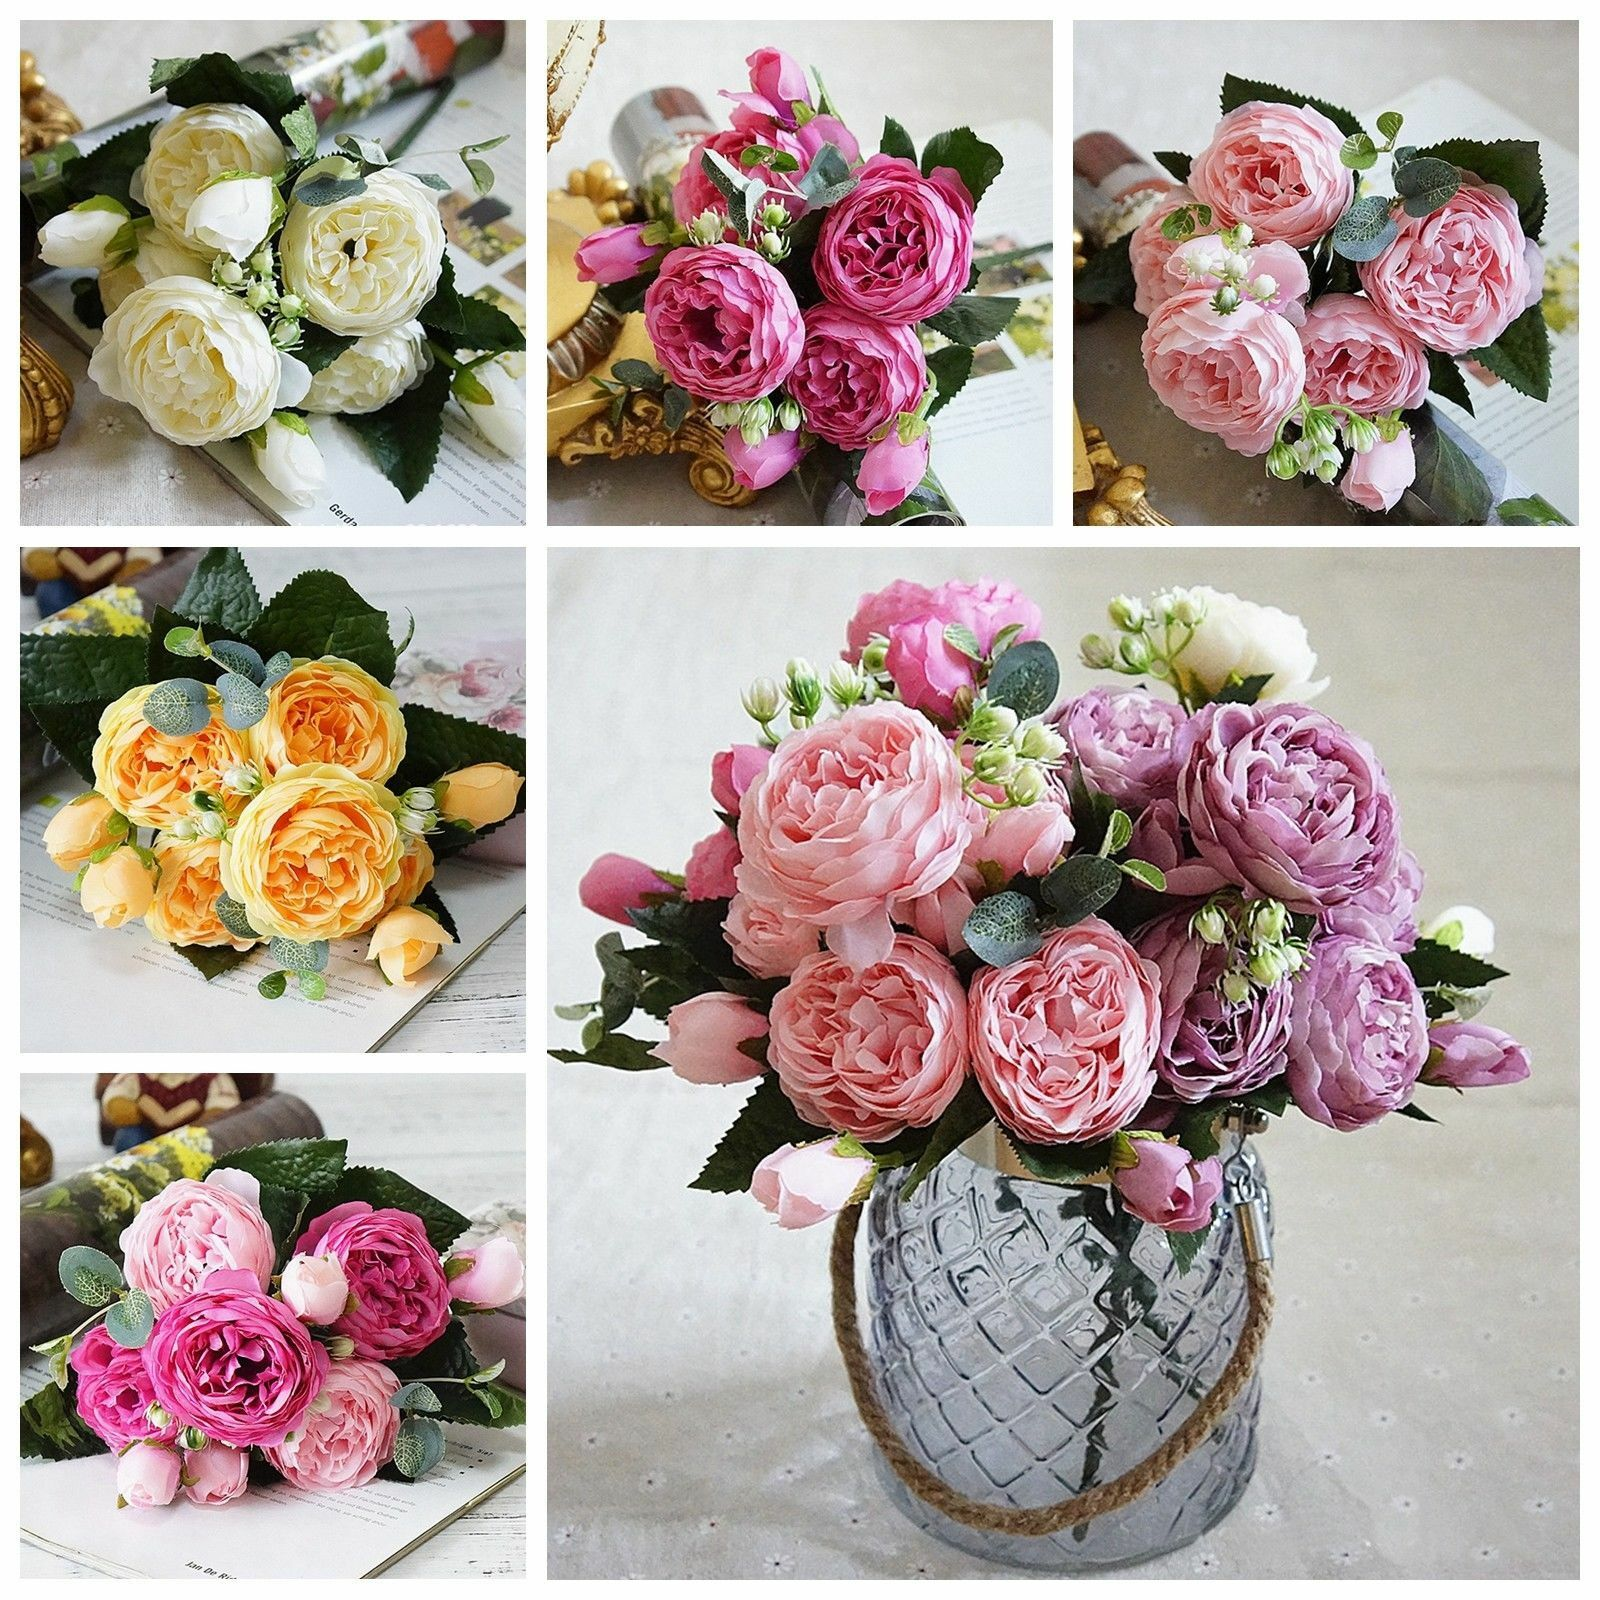 5 Heads Rose Peony Artificial Flowers Silk Pink Bouquet Wedding Home Party Decor